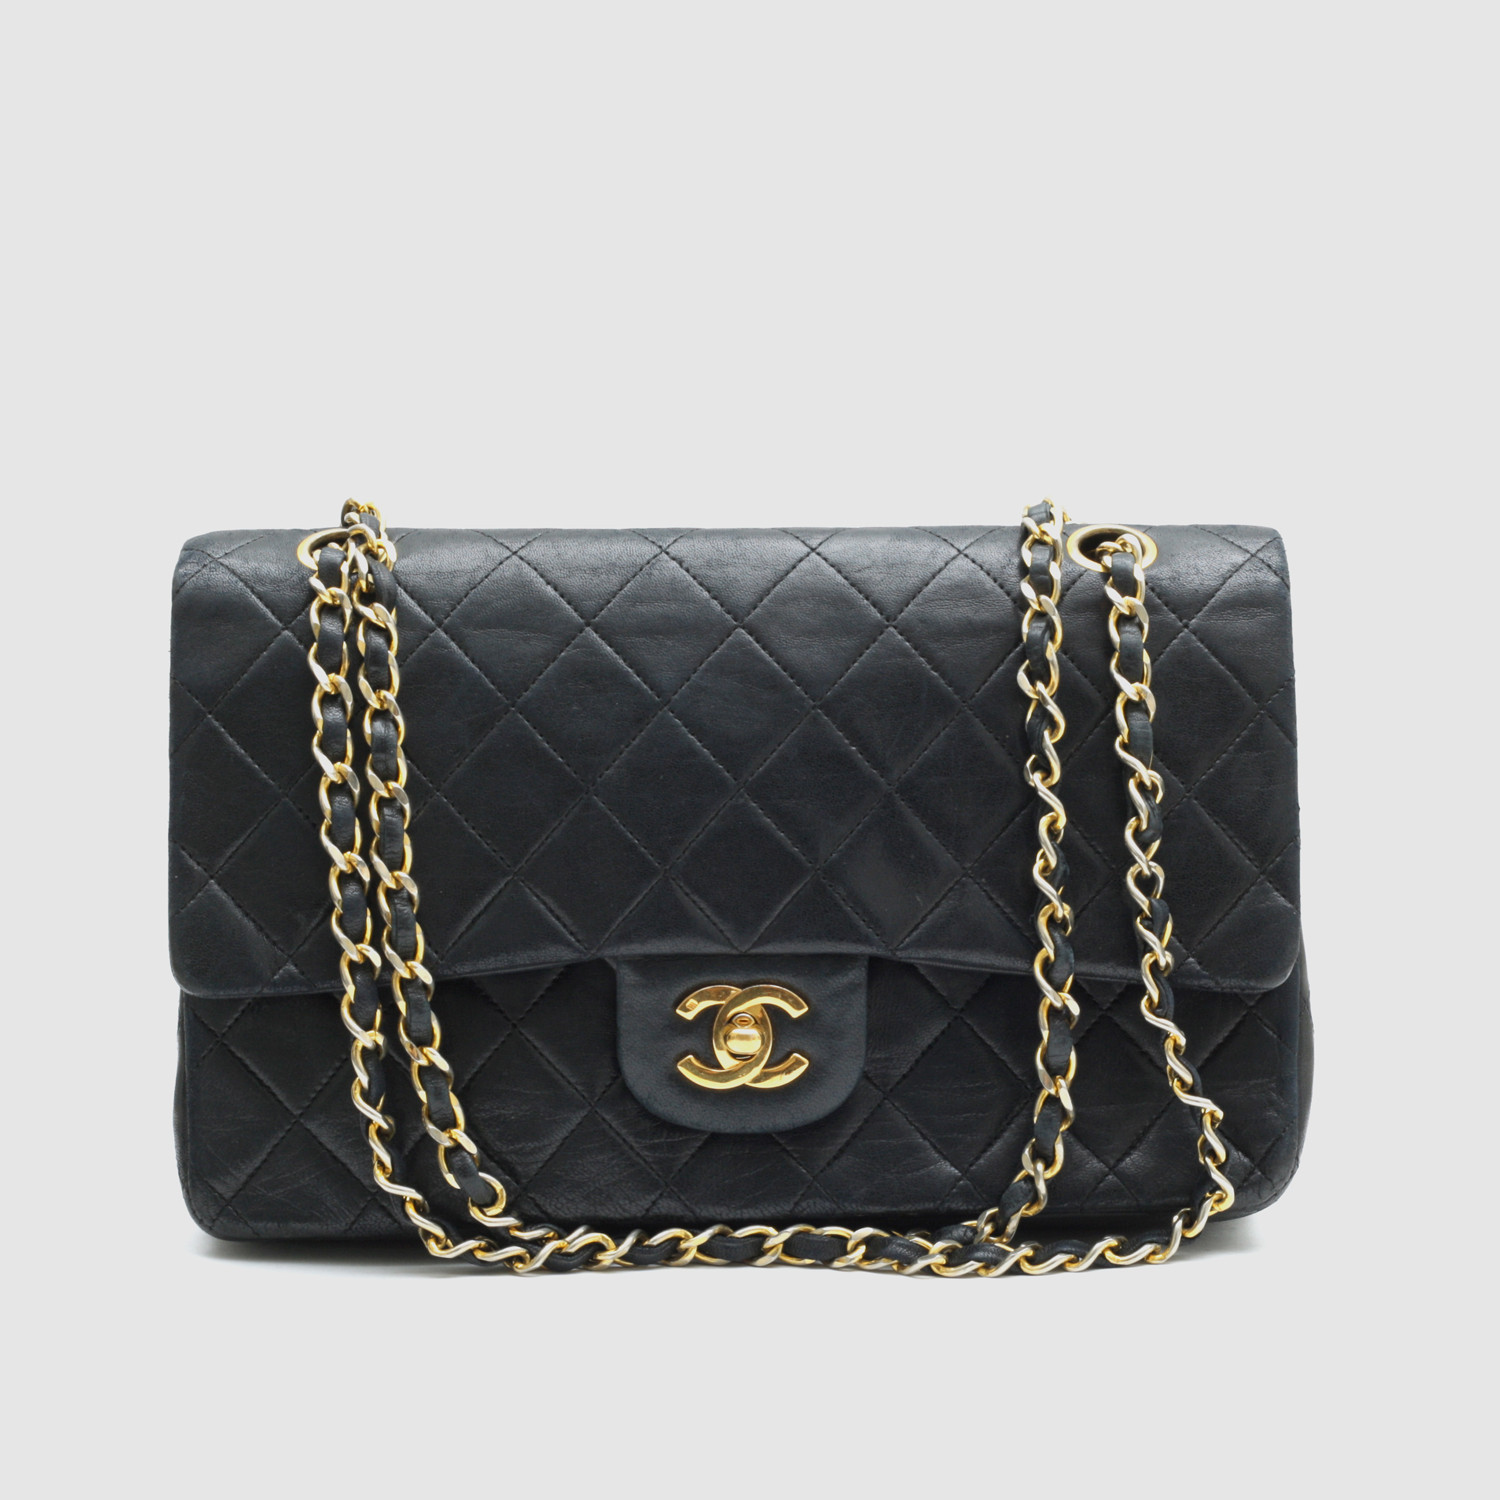 8824568dab86 Chanel Classic Flap Bag    Black Quilted Lambskin - Vintage Luxury ...